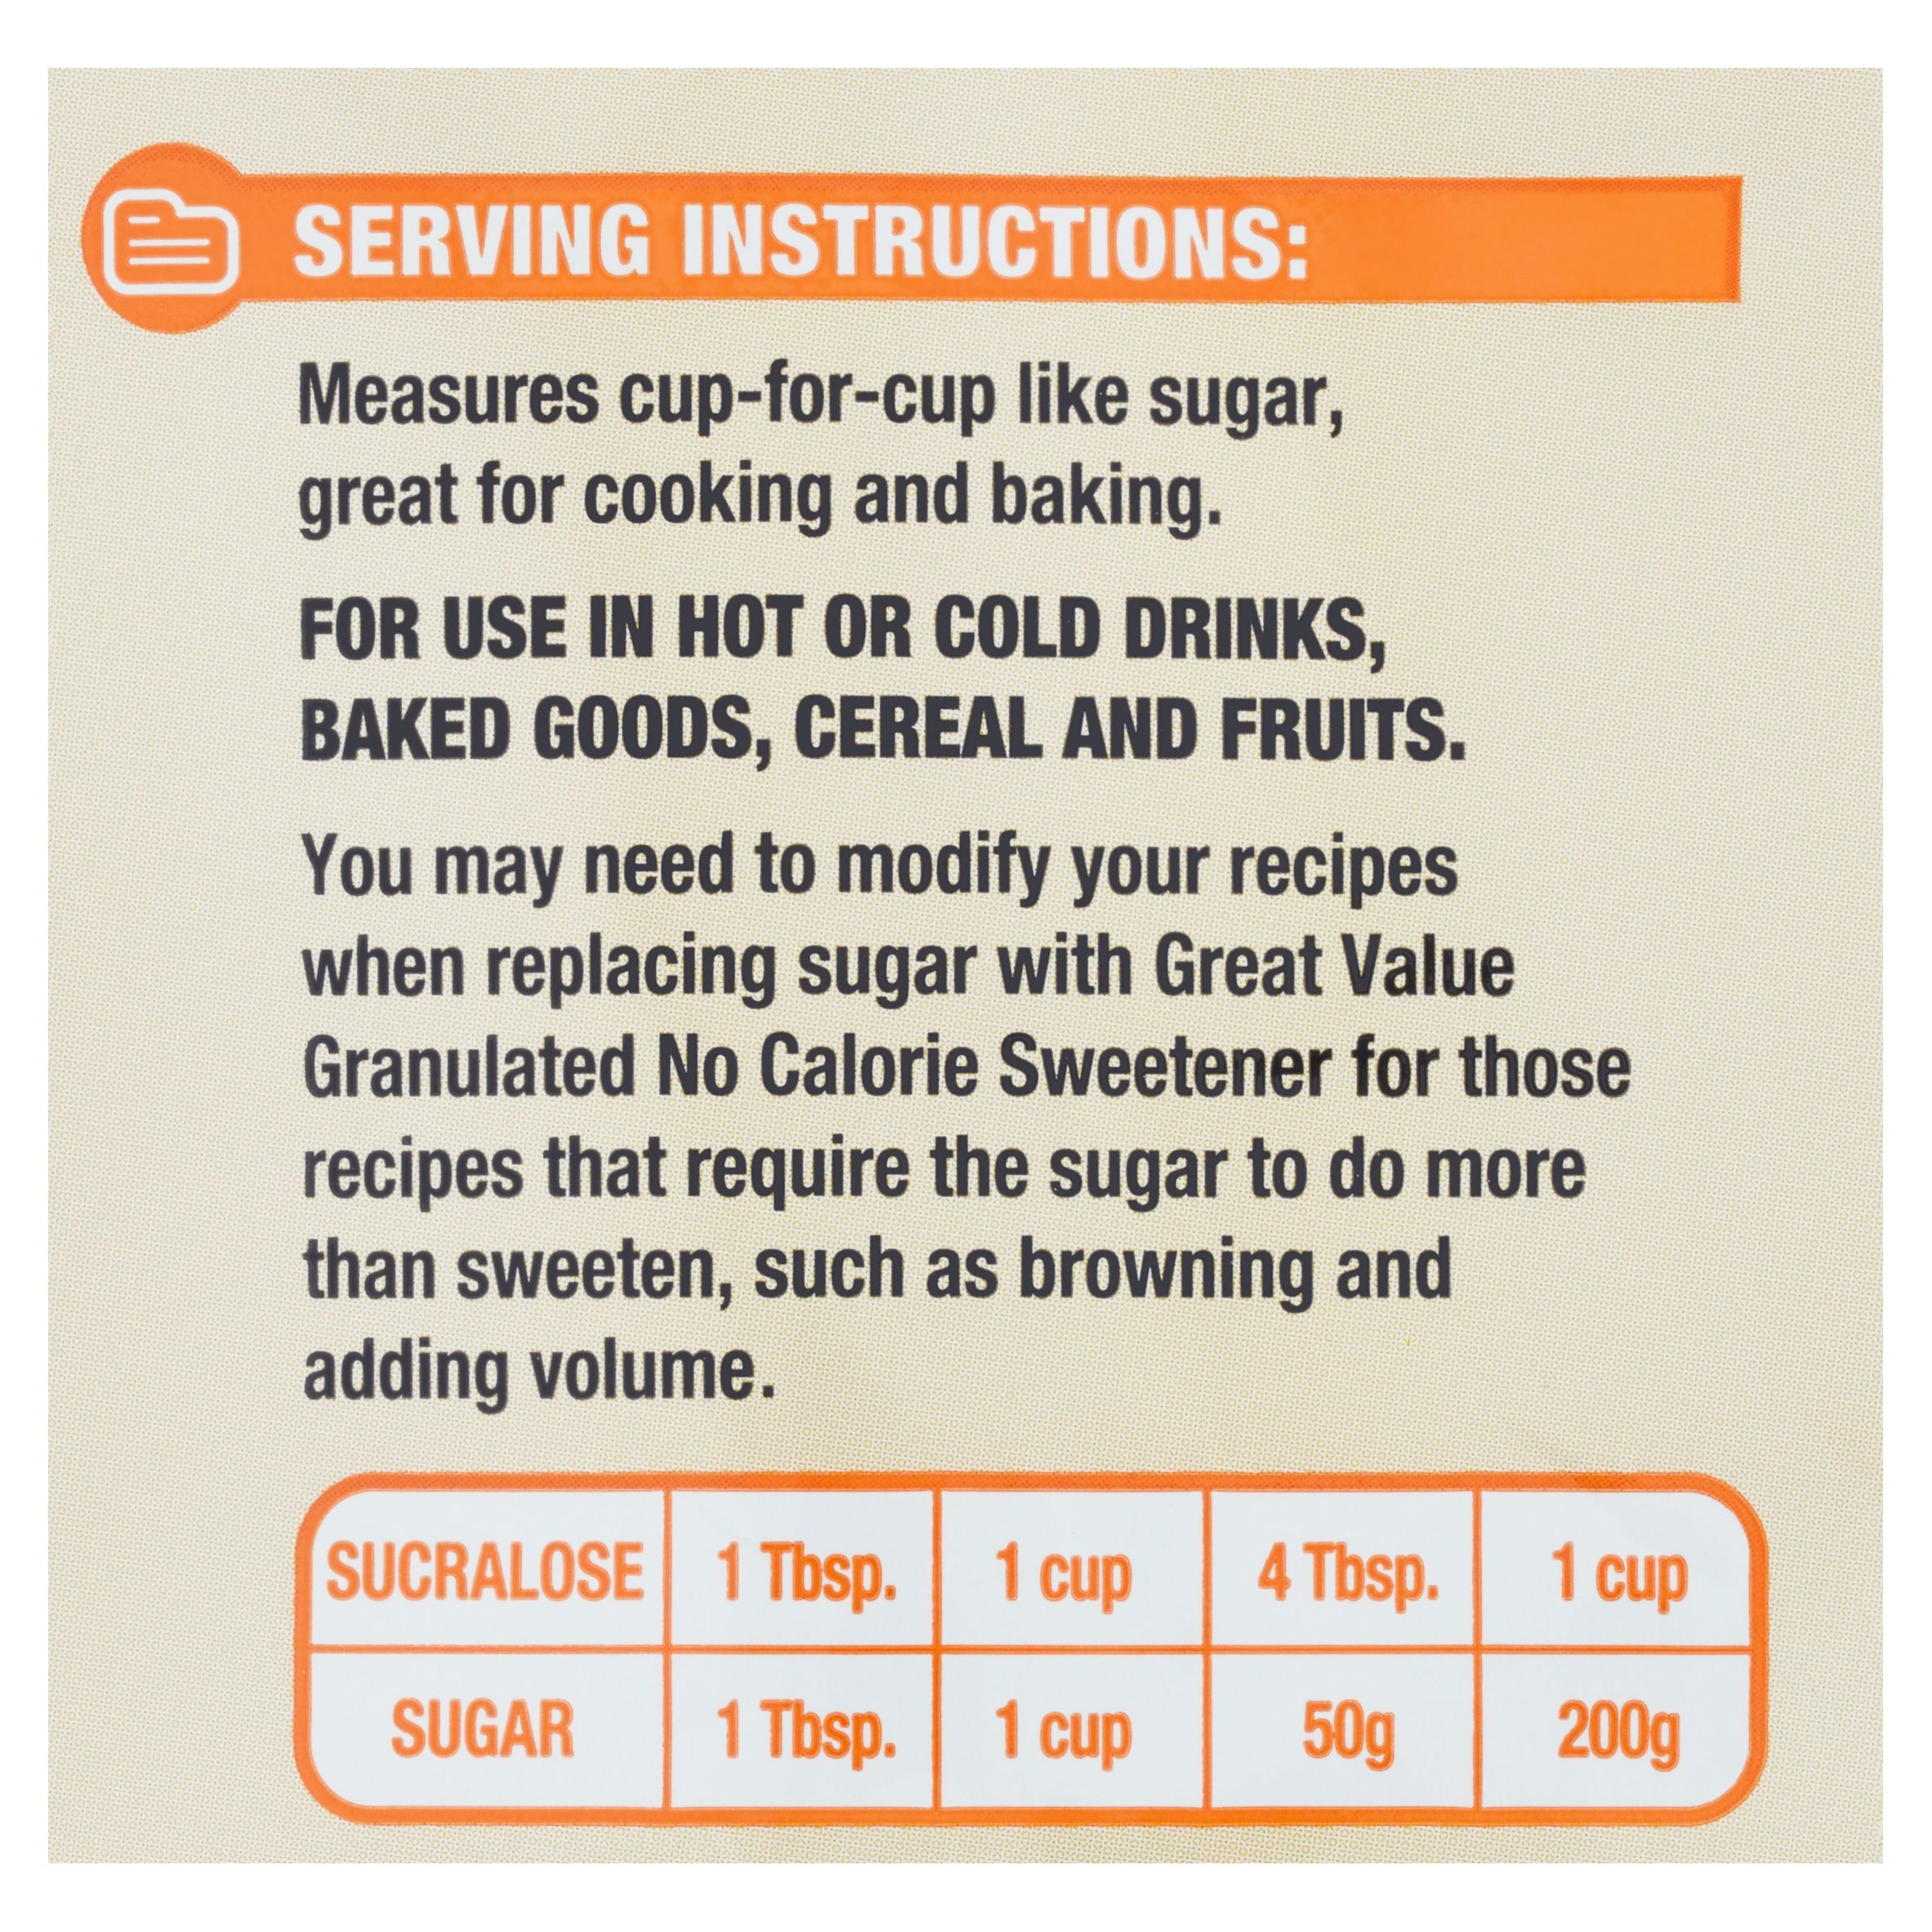 How many cups is 200g of caster sugar